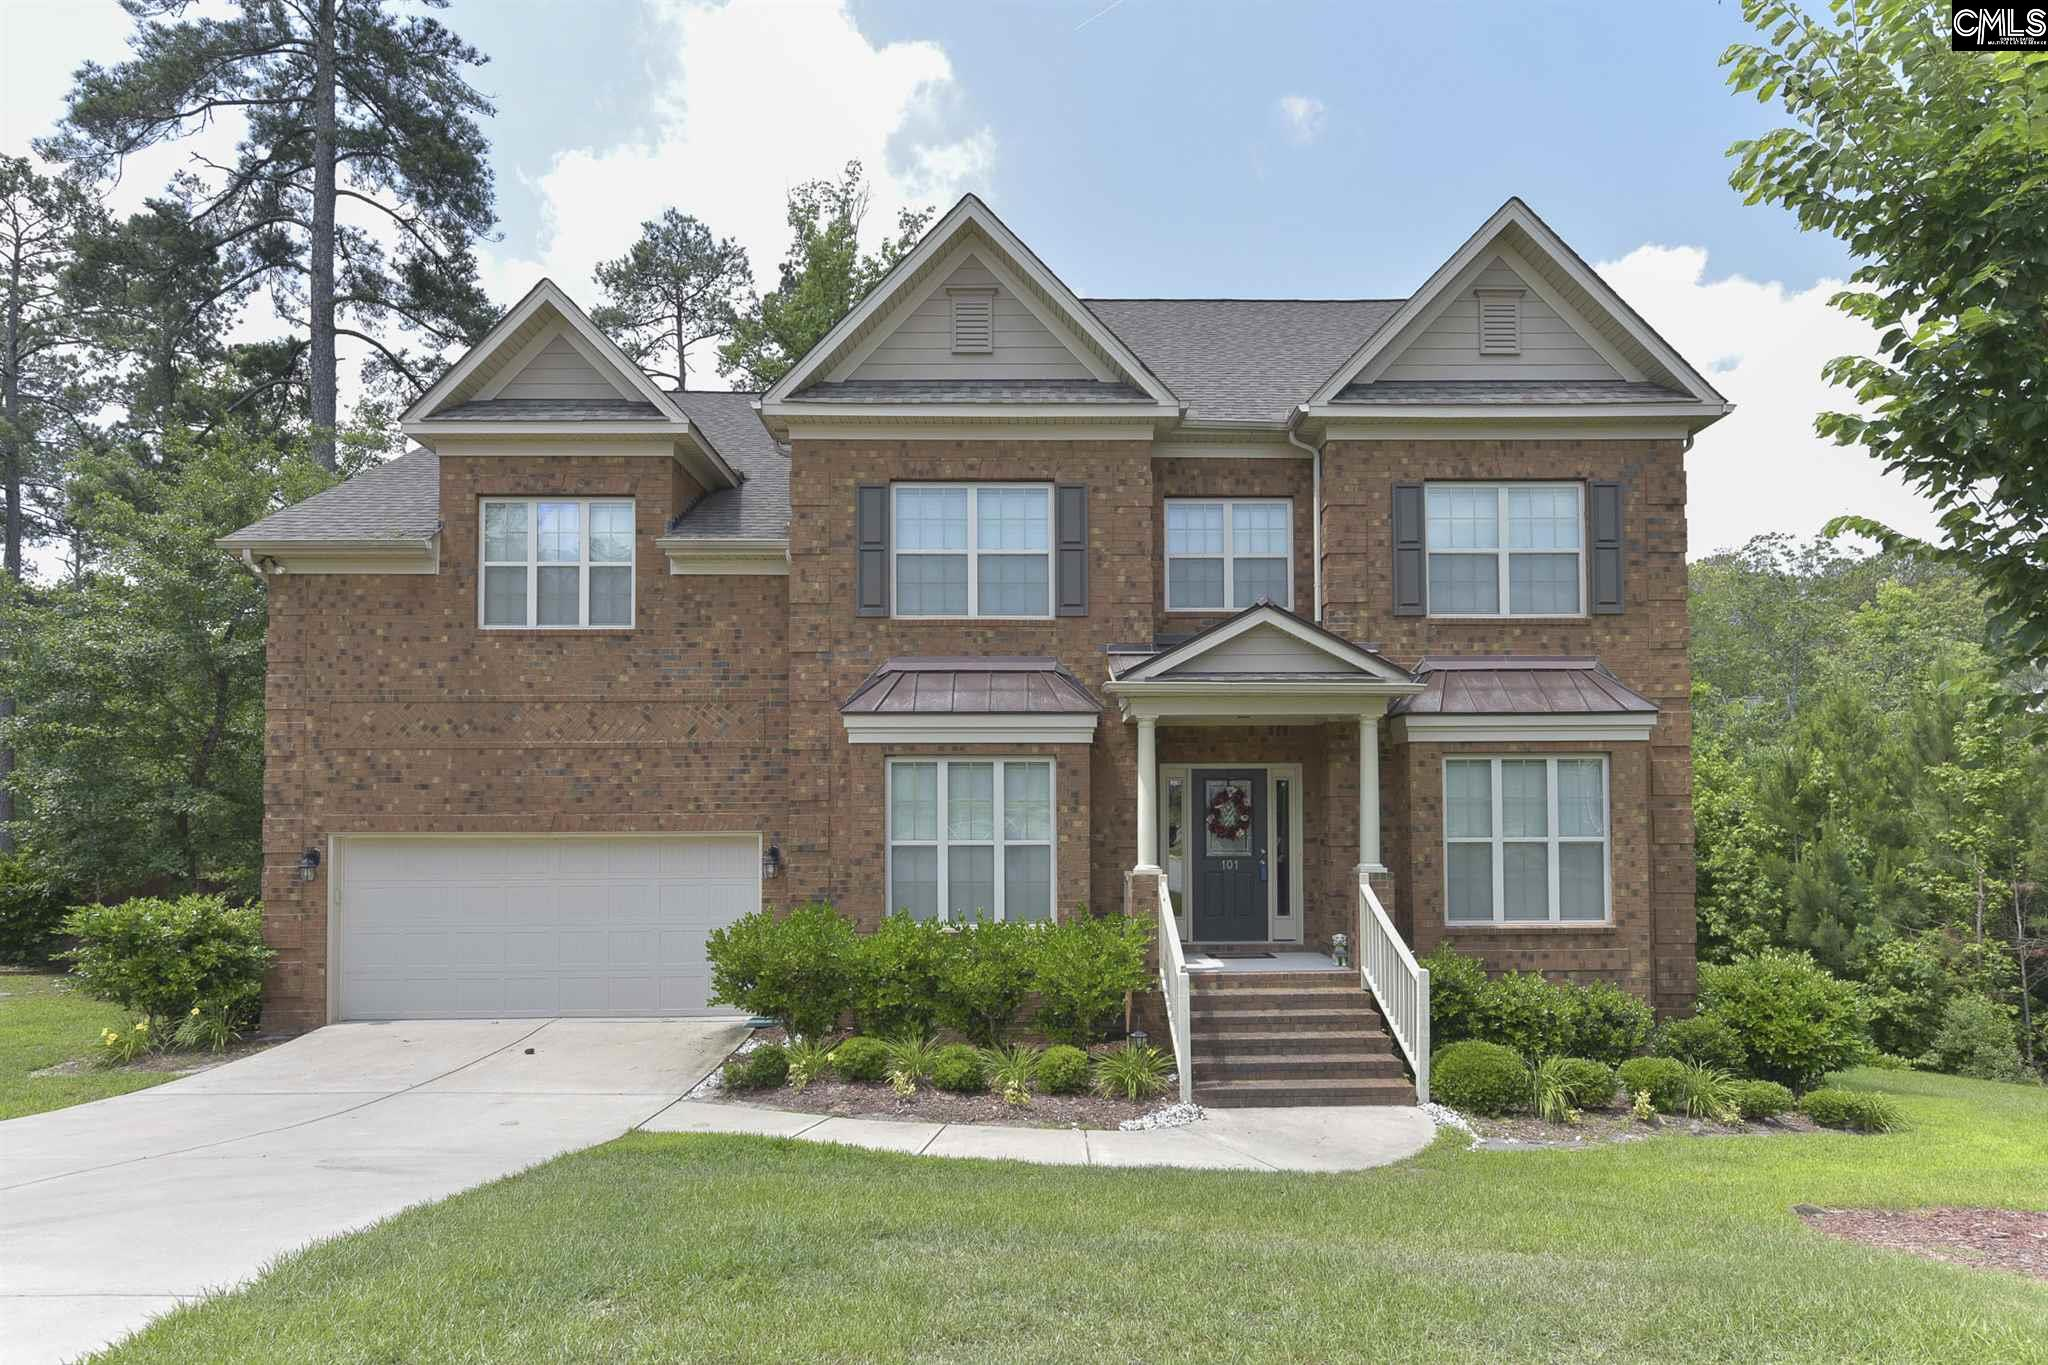 101 Abbeywalk Columbia, SC 29229-8429